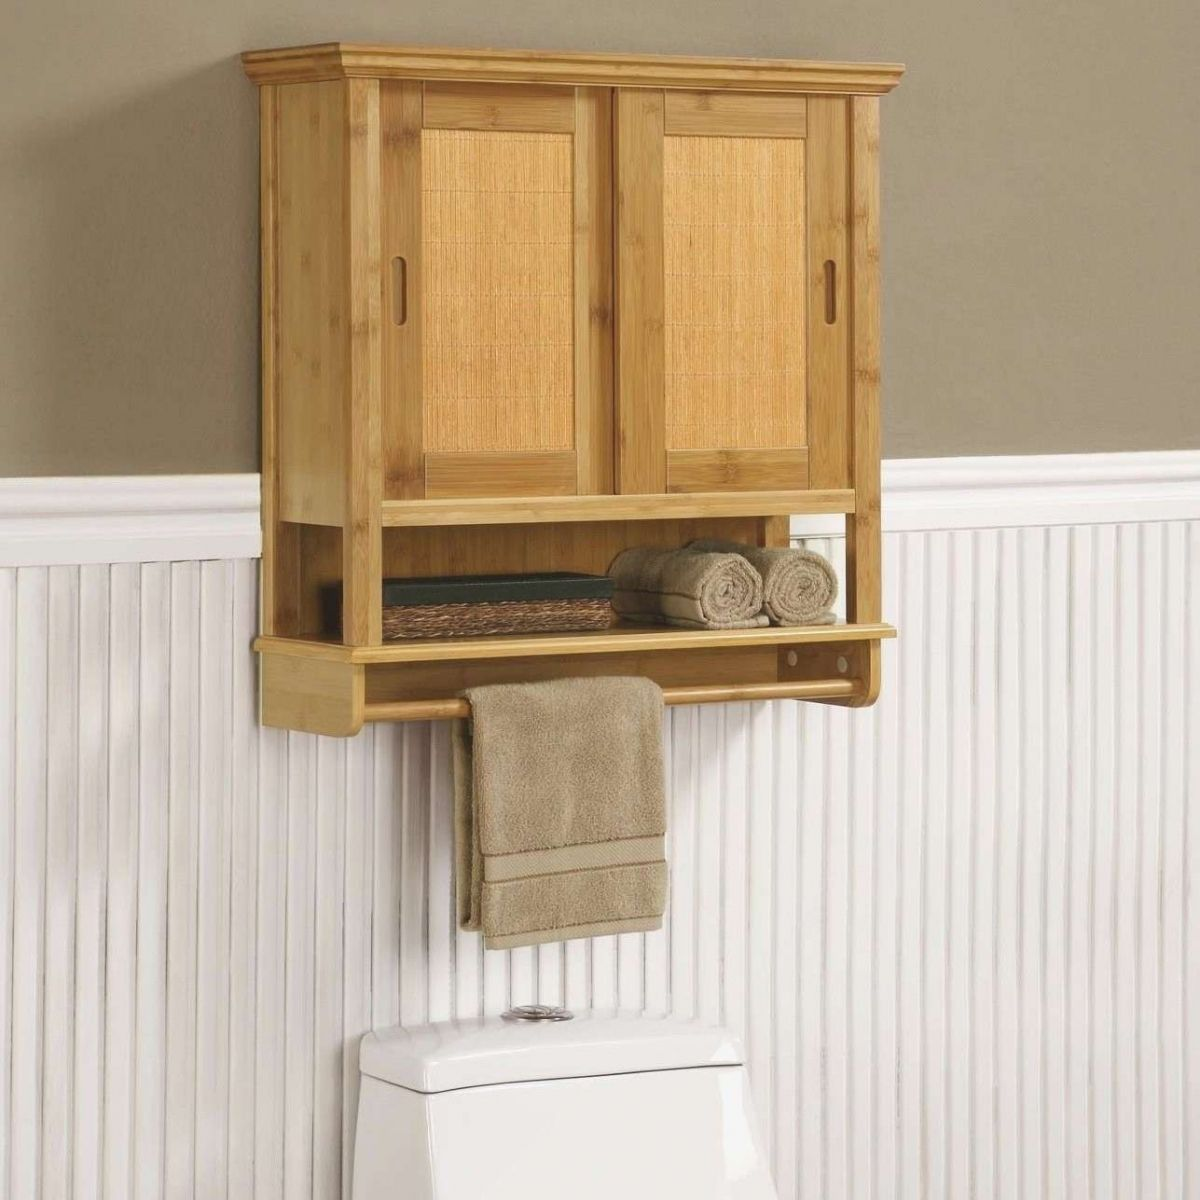 Unfinished Wood Wall Cabinets Elegant Bathroom Wall Cabinets Pine Pertaining To Brilliant Bathroom Cabinet Pine